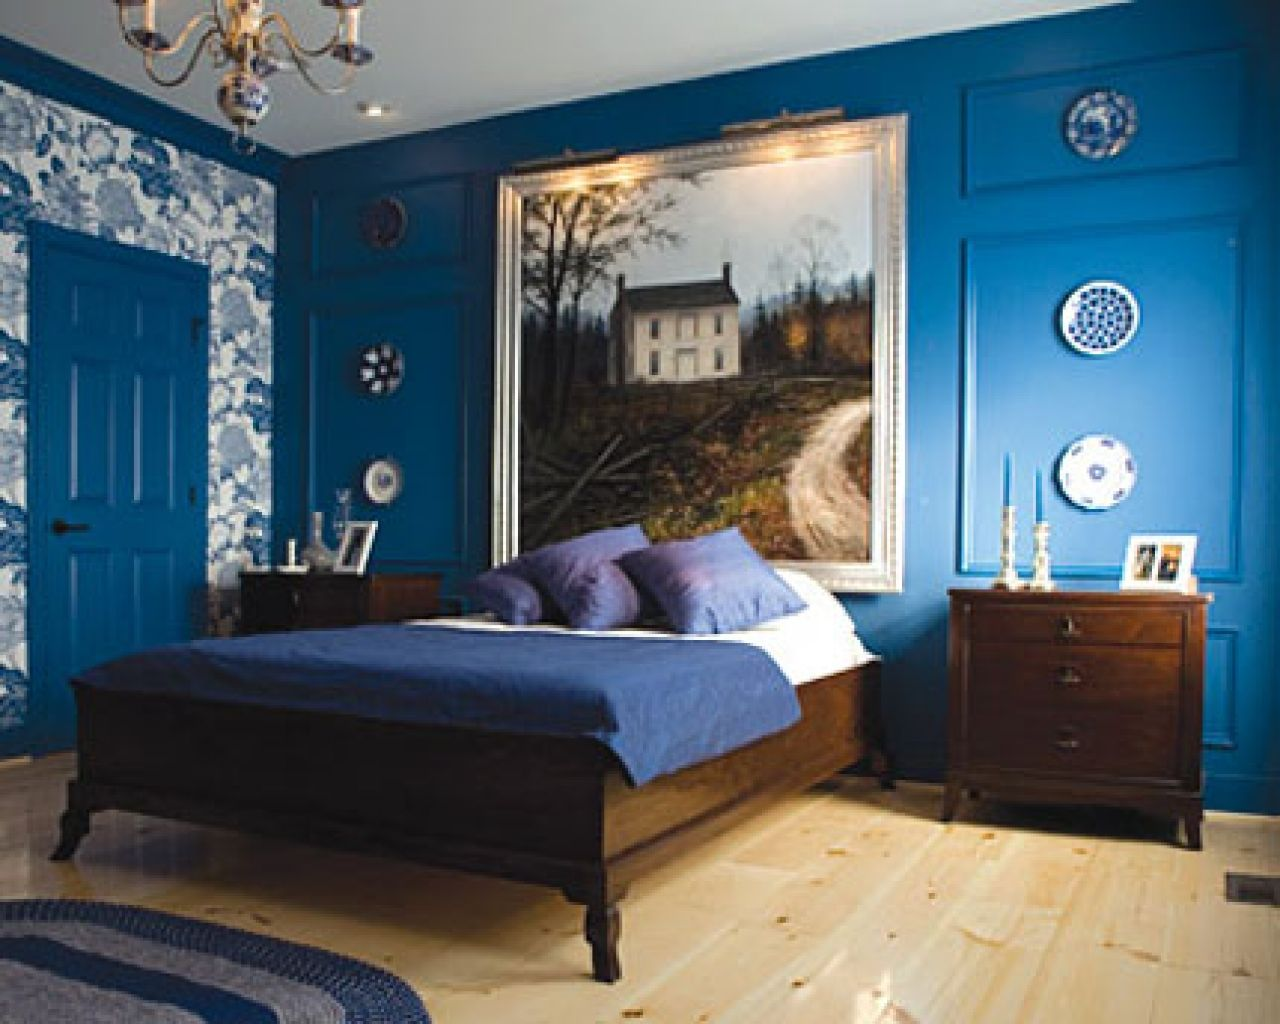 Bedroom painting design ideas pretty natural bedroom paint ideas cute blue wall idp interior - Wall designs bedroom ...